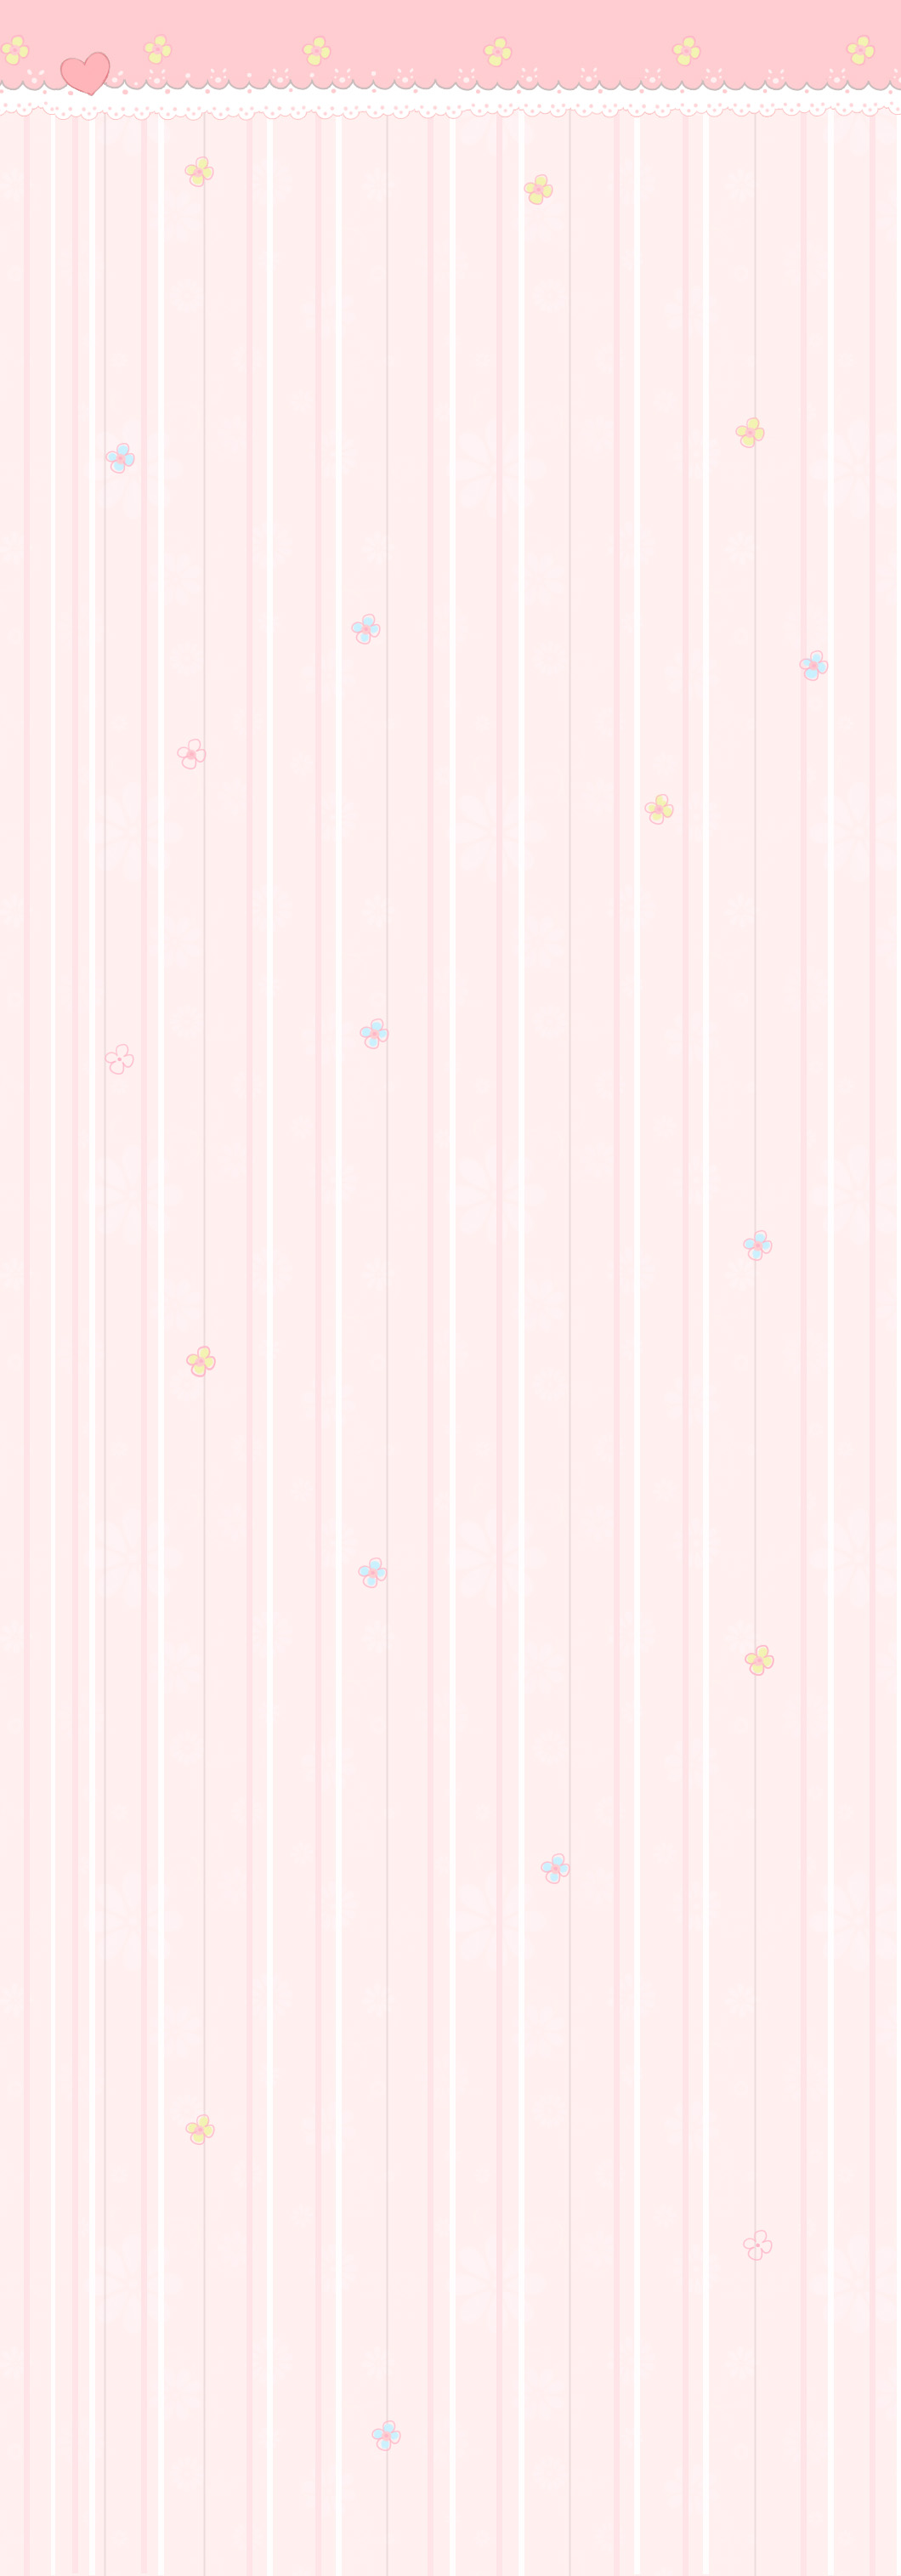 Free Custom box Background: Pastel flowers by Mimru